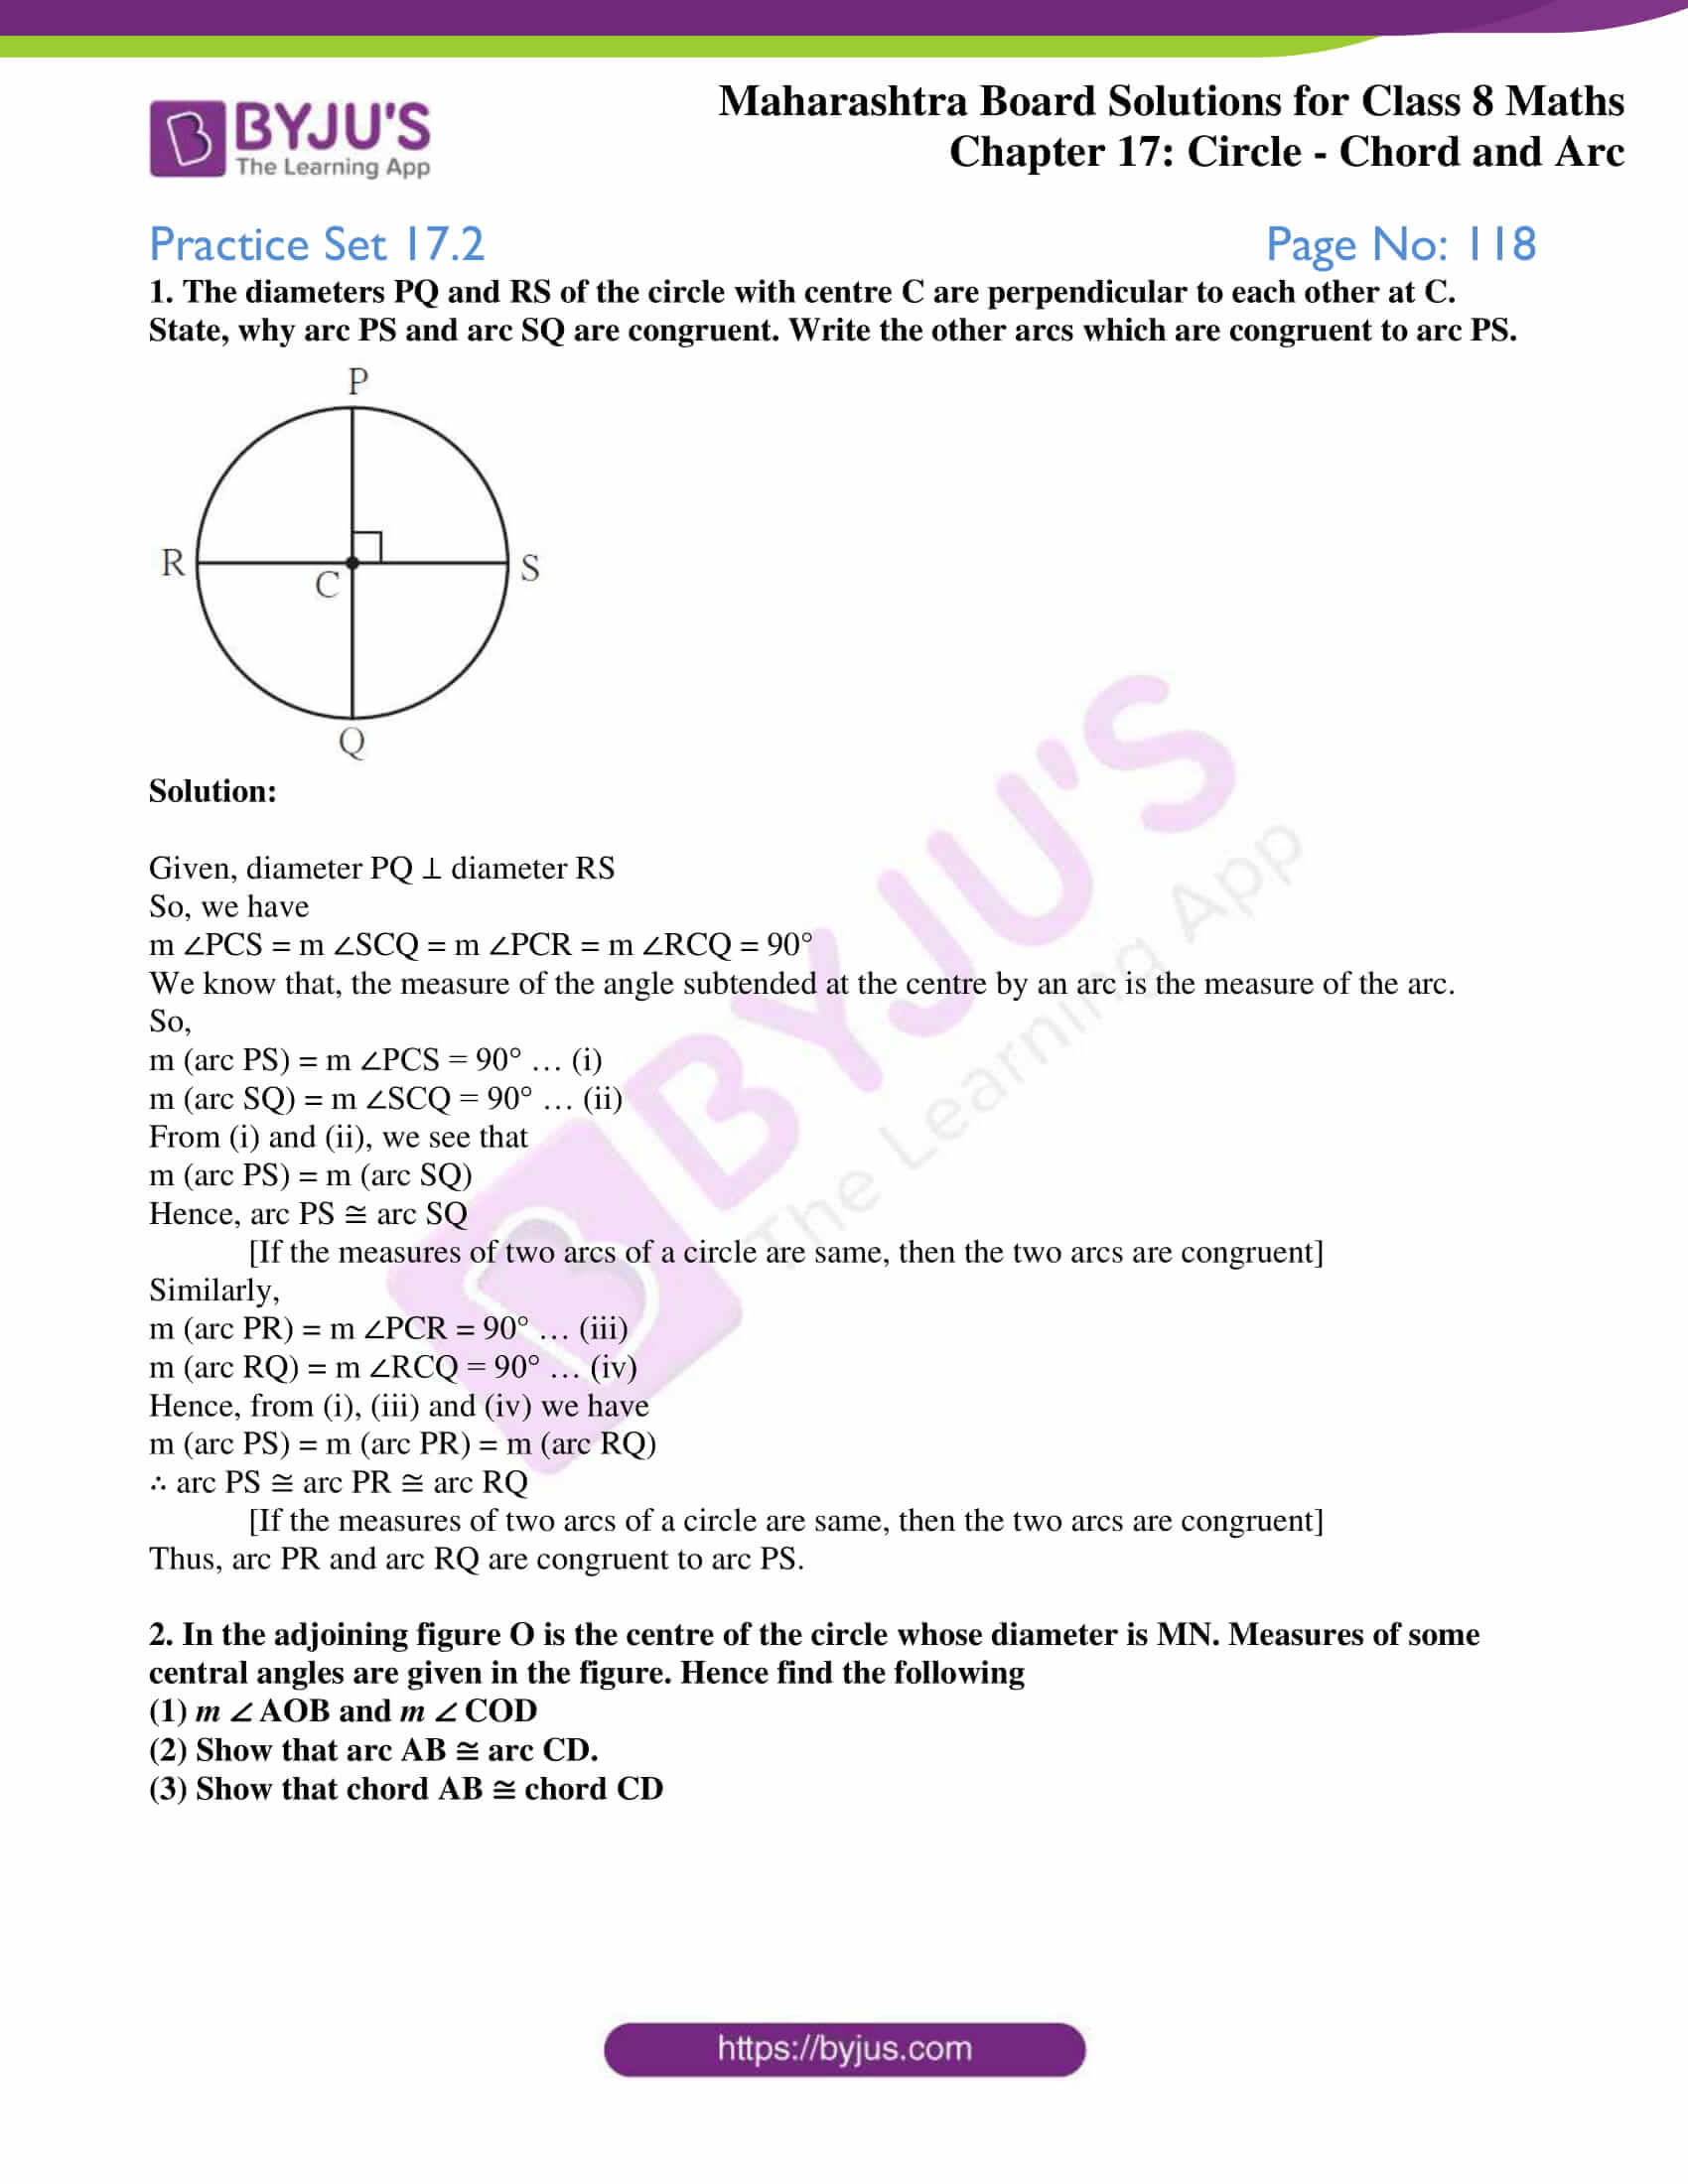 msbshse sol for class 8 maths chapter 17 4